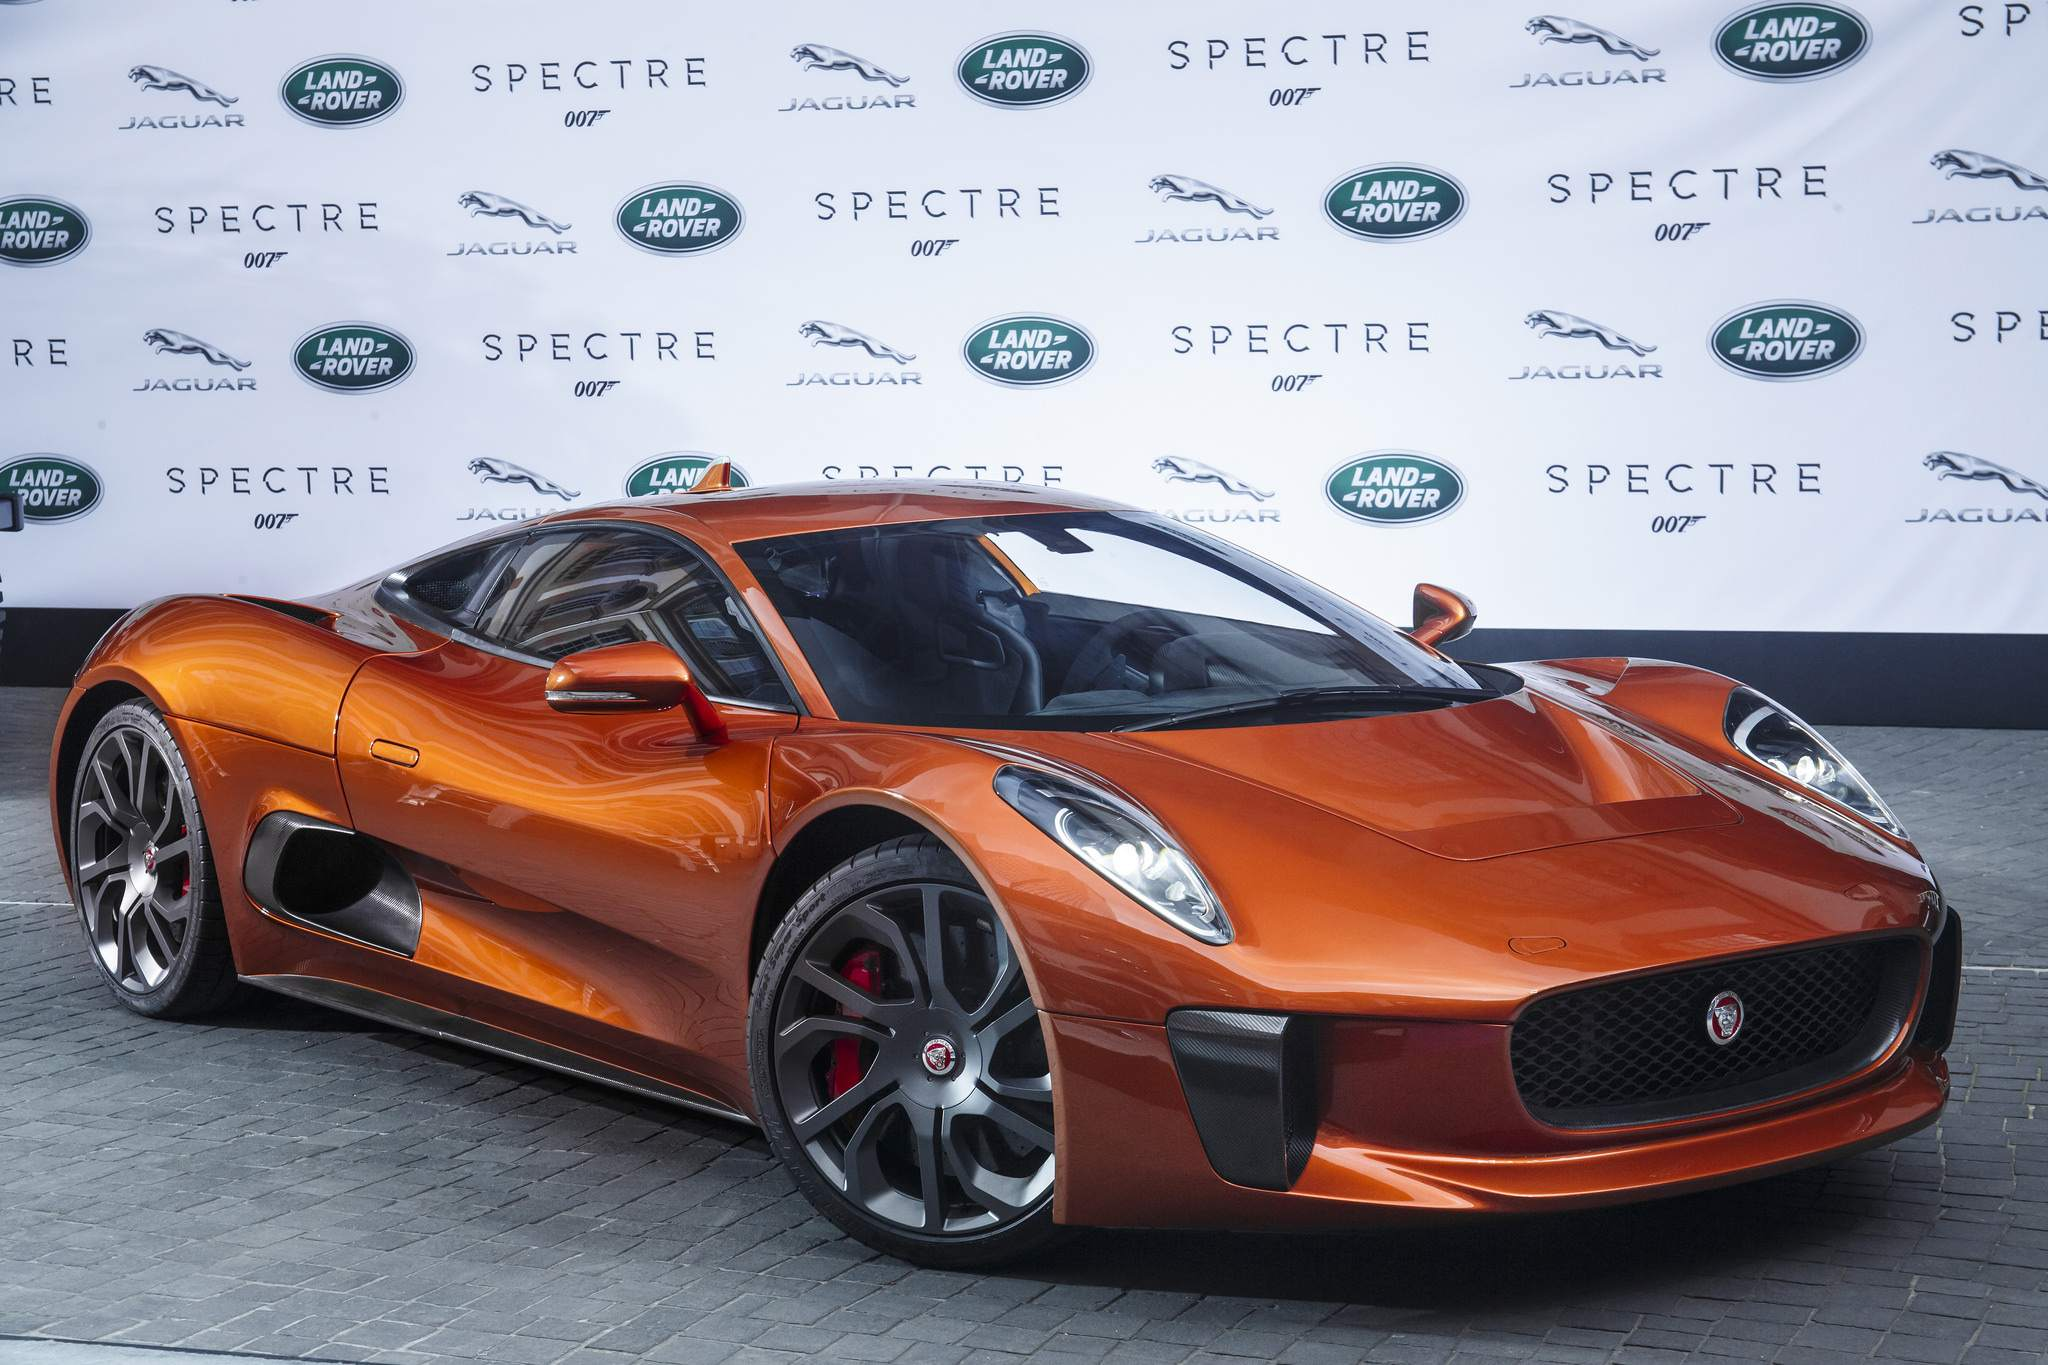 spectre car5 Jaguar Land Rover Latest Bond Cars